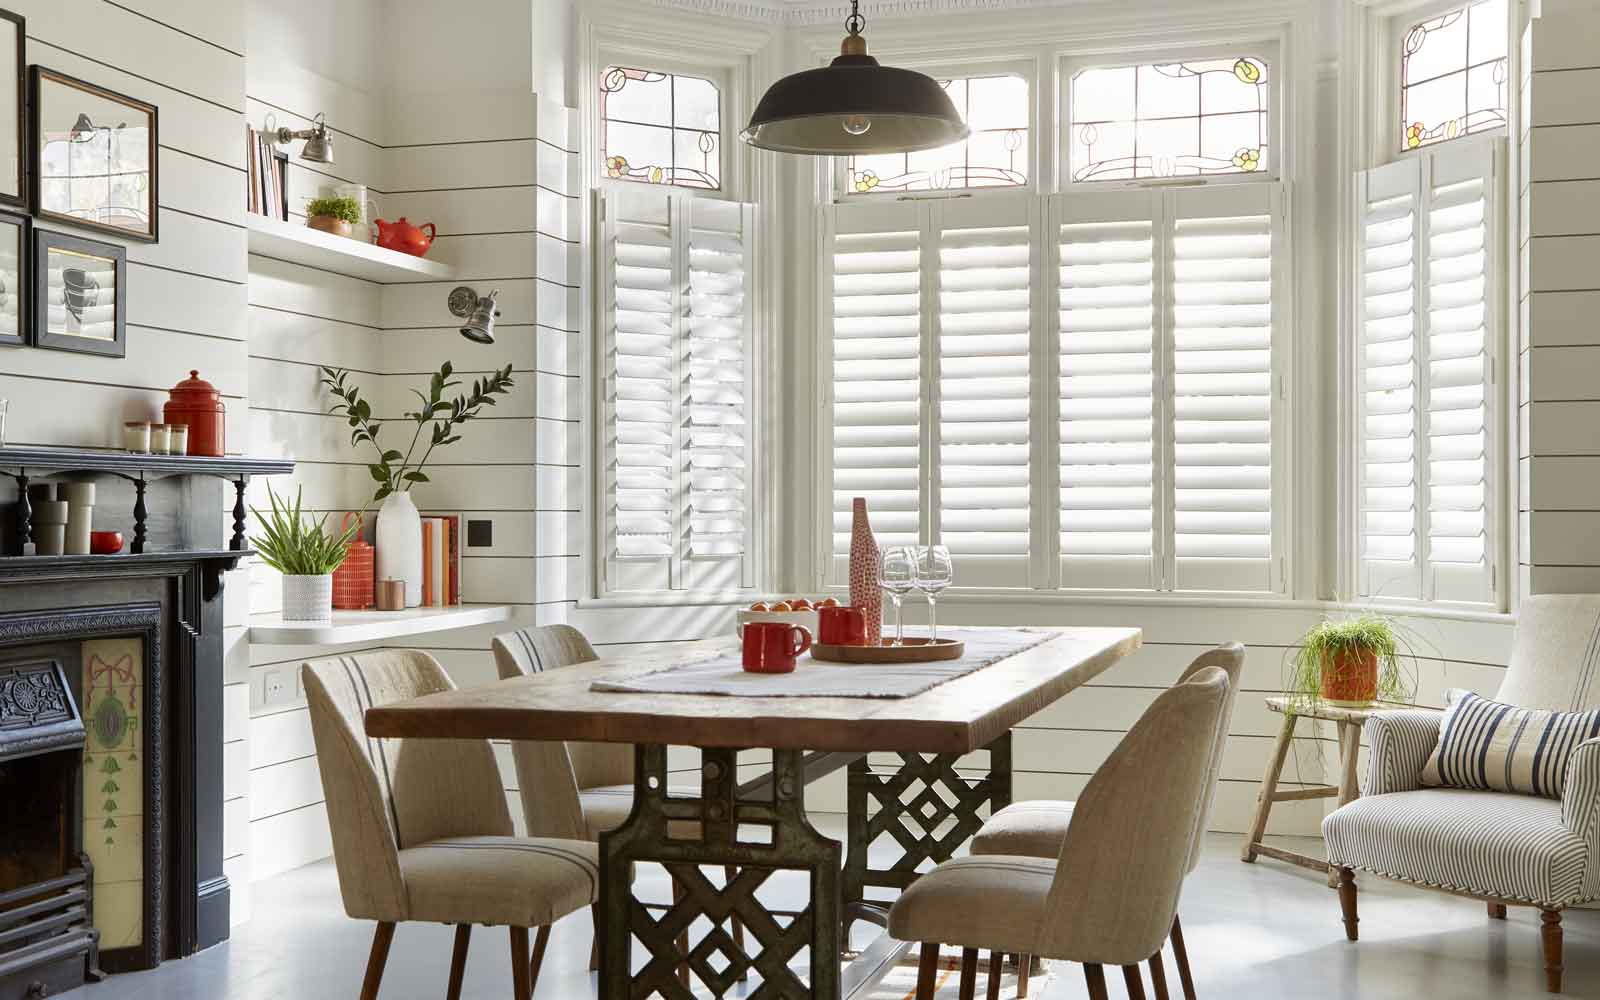 plantation shutters on a bay in a kitchen